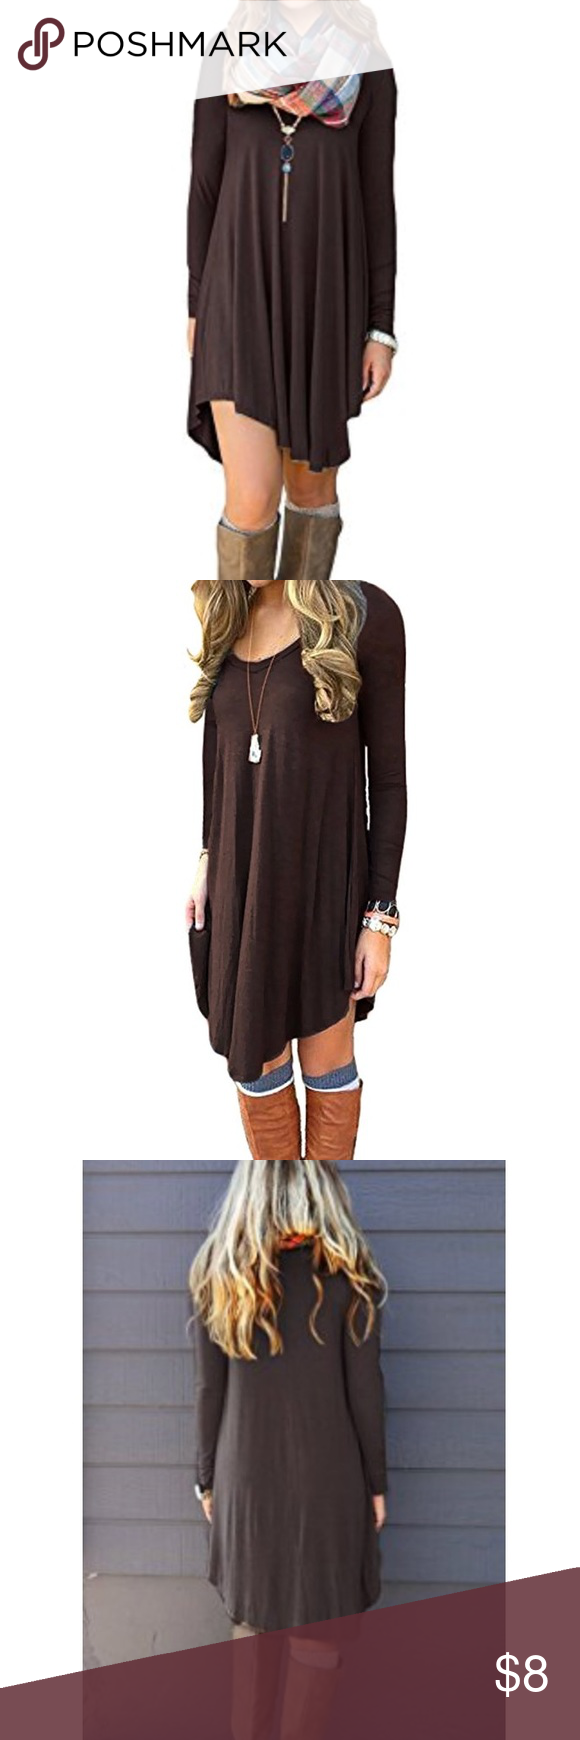 T shirt dress ubrown coffee color ulong sleeve uno flaws ucute utrue